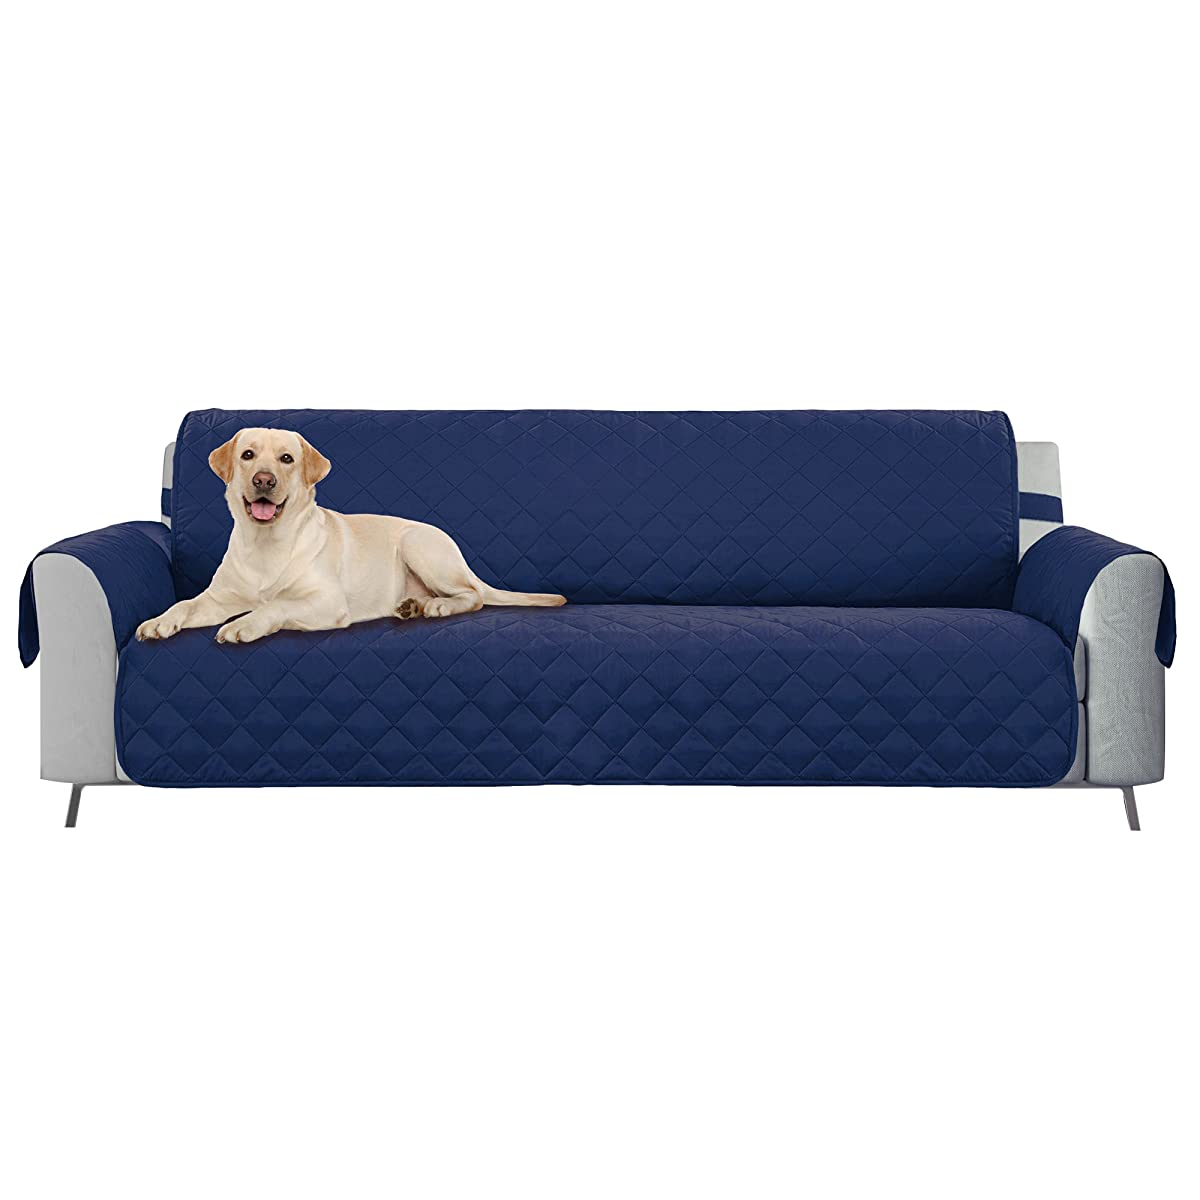 """E-Living Store Reversible Sofa/Couch Furniture Protector with 2 Inch Elastic Strap, Machine Washable, Perfect for Pet and Kids, Seat Width Up to 70"""" - Navy Blue"""